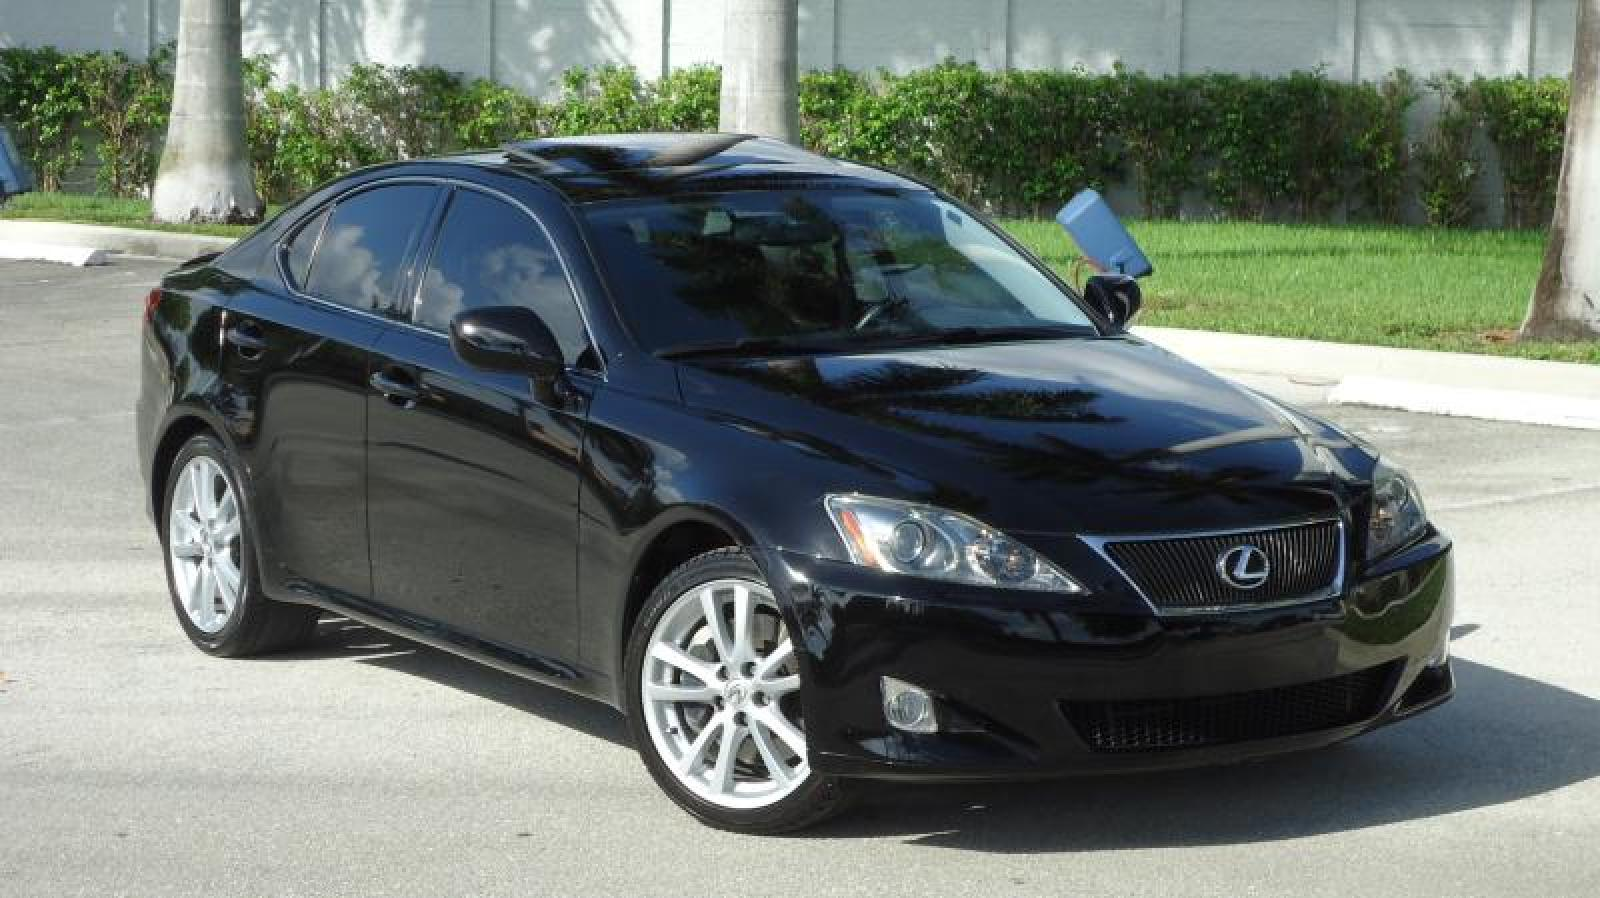 2007 lexus is 350 information and photos zombiedrive. Black Bedroom Furniture Sets. Home Design Ideas